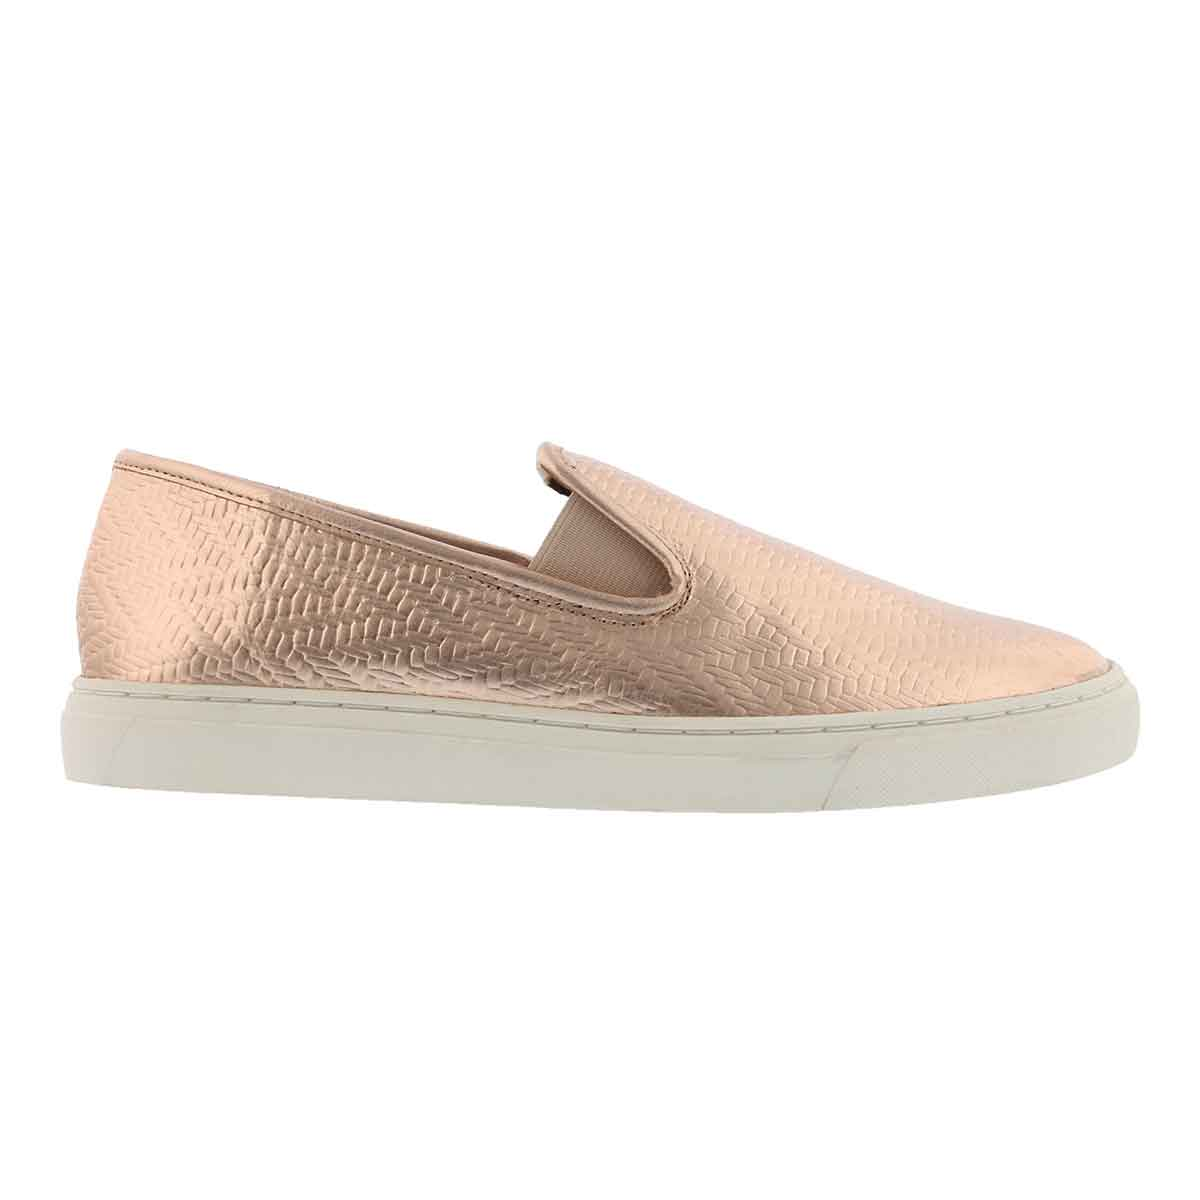 Lds Becker pale rose casual slip on shoe